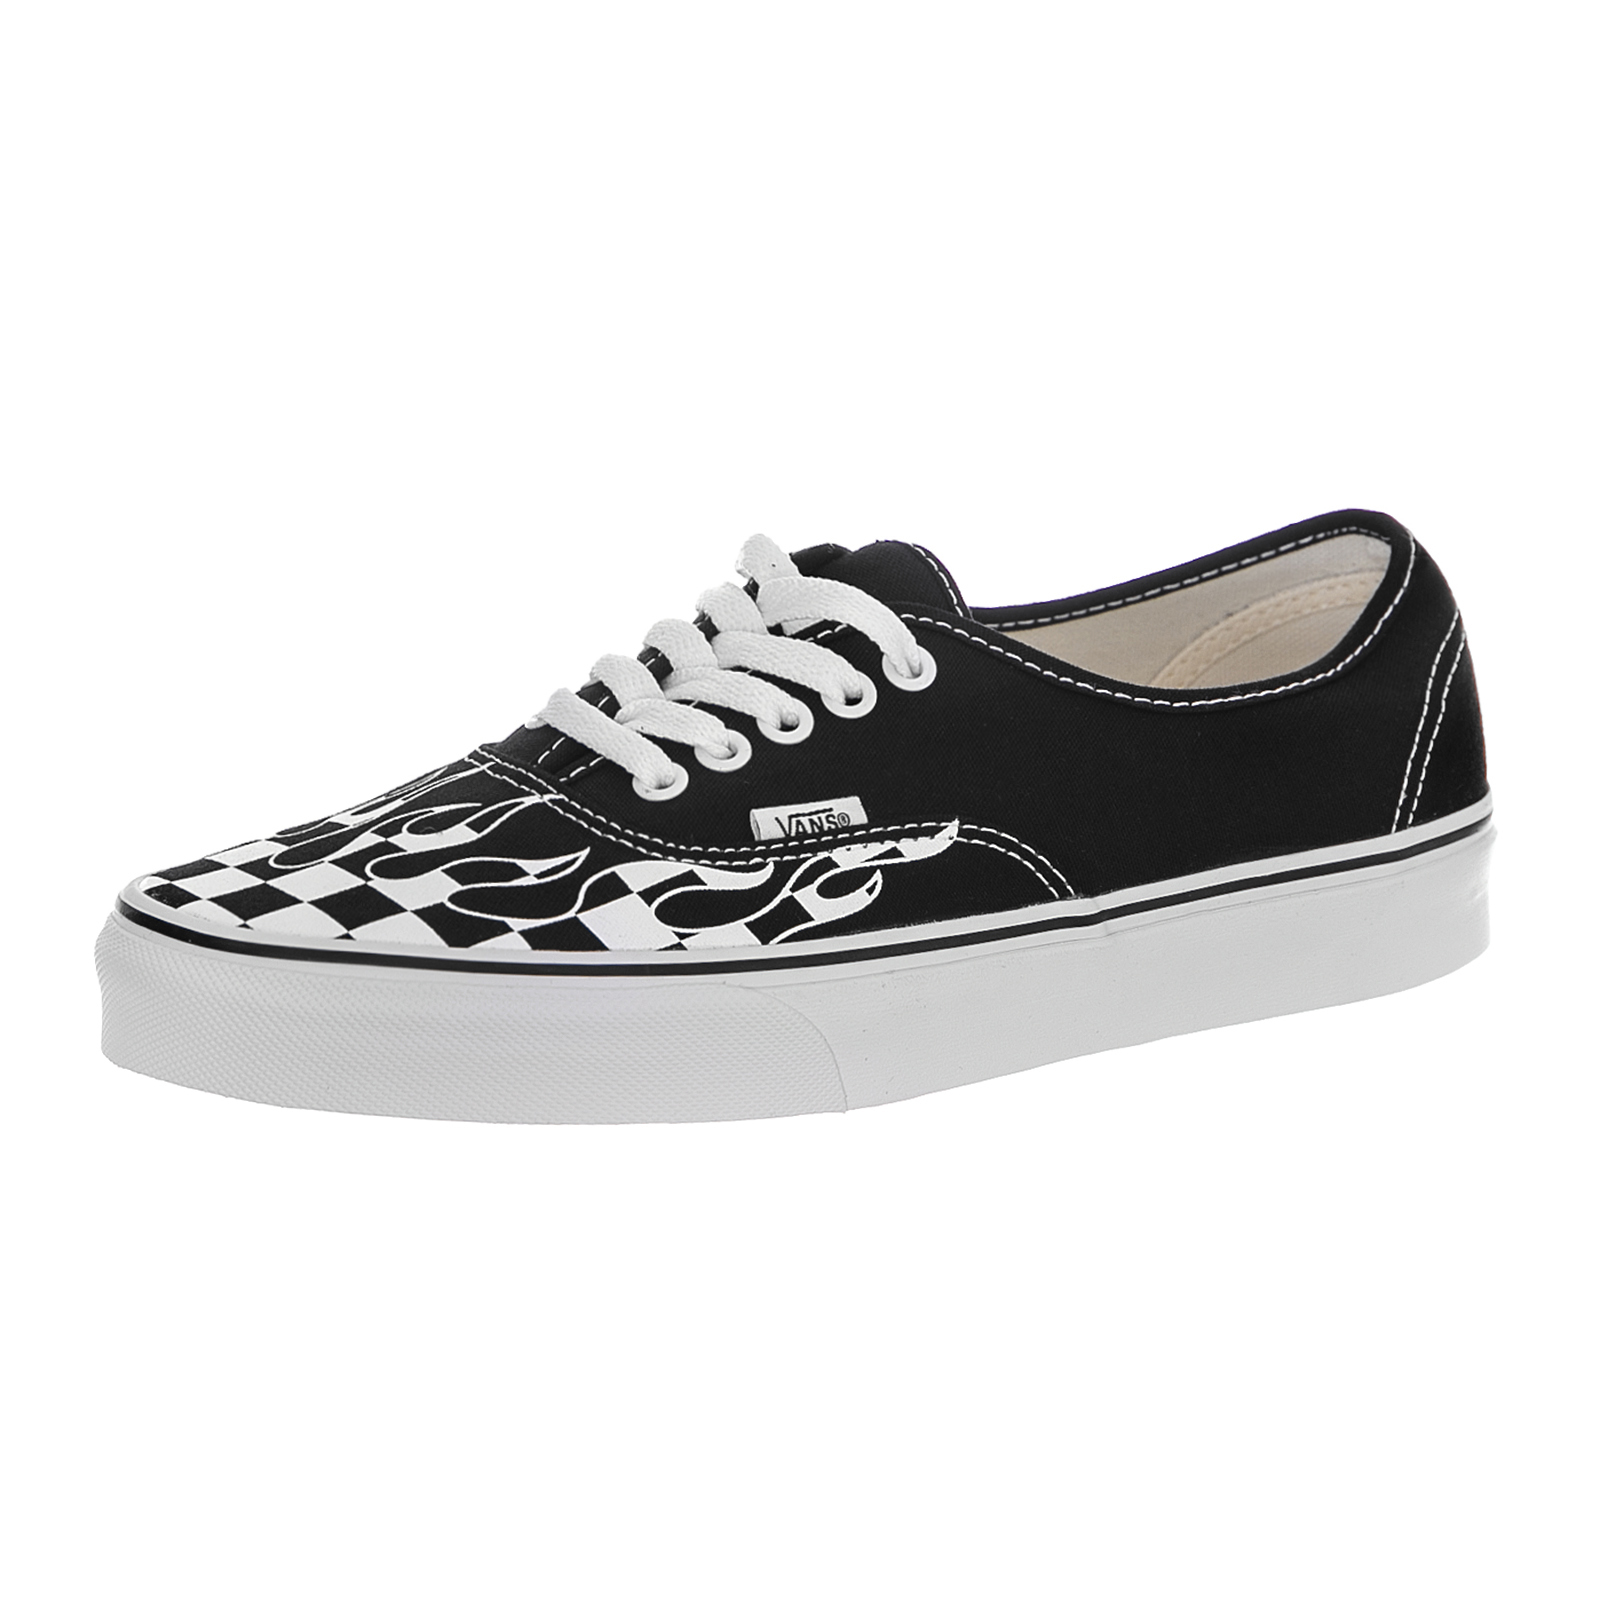 cfe6ebfe018a Vans Sneakers Original (Checker Flame) Black   True White Black